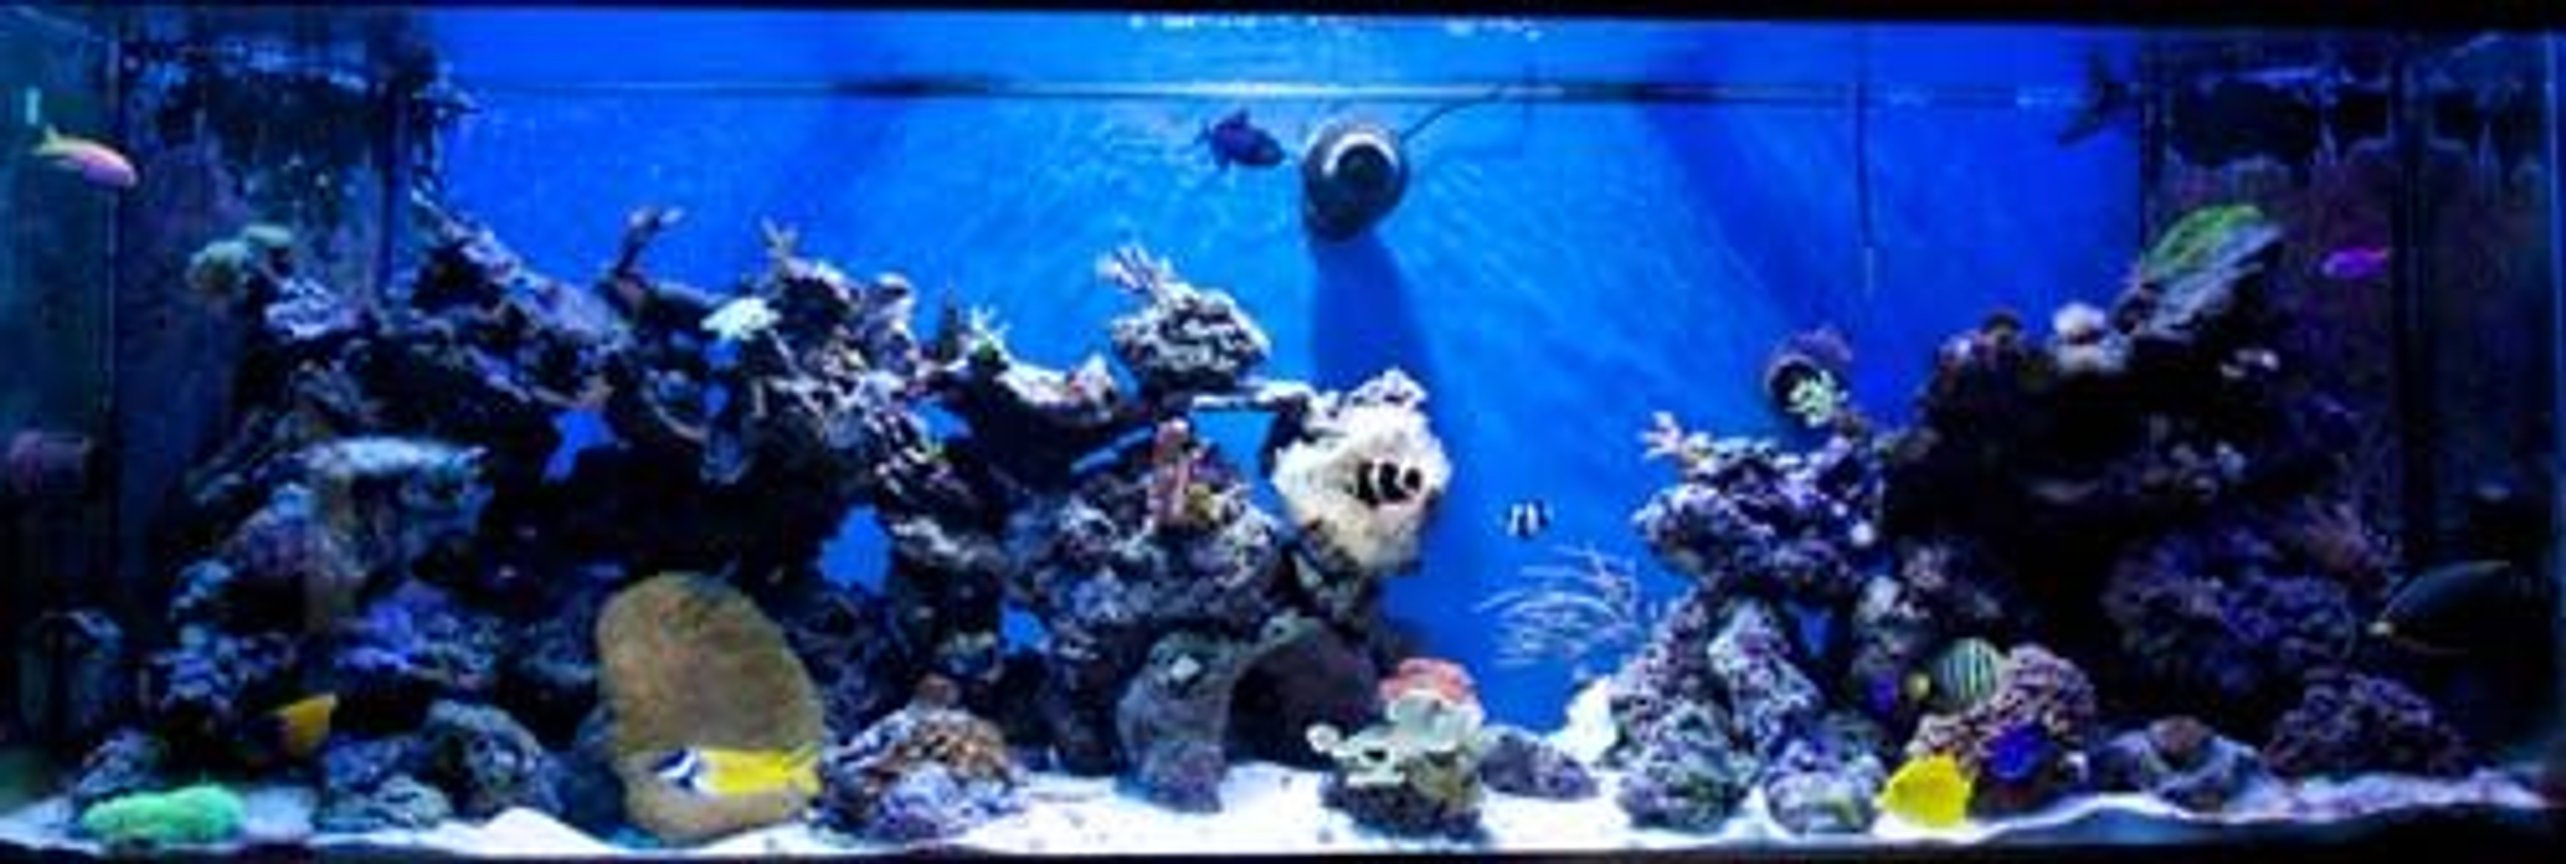 265 gallons reef tank (mostly live coral and fish) - 265g mixed reef